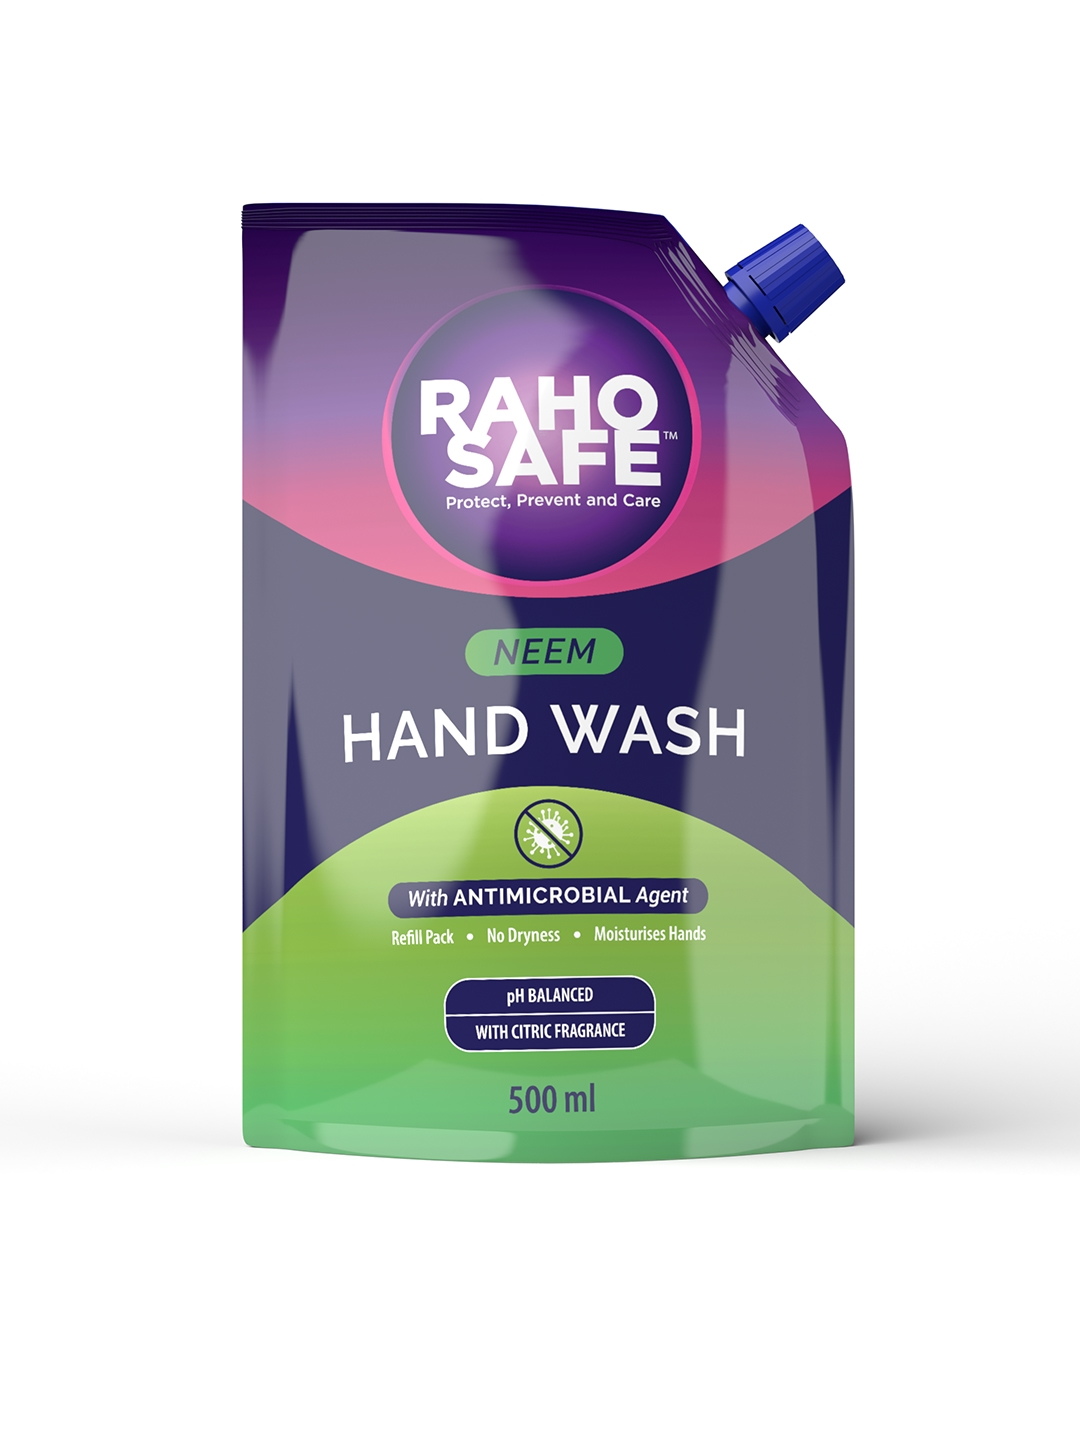 Raho Safe Pack of 2 Neem Hand Wash 500ml Refill Pack